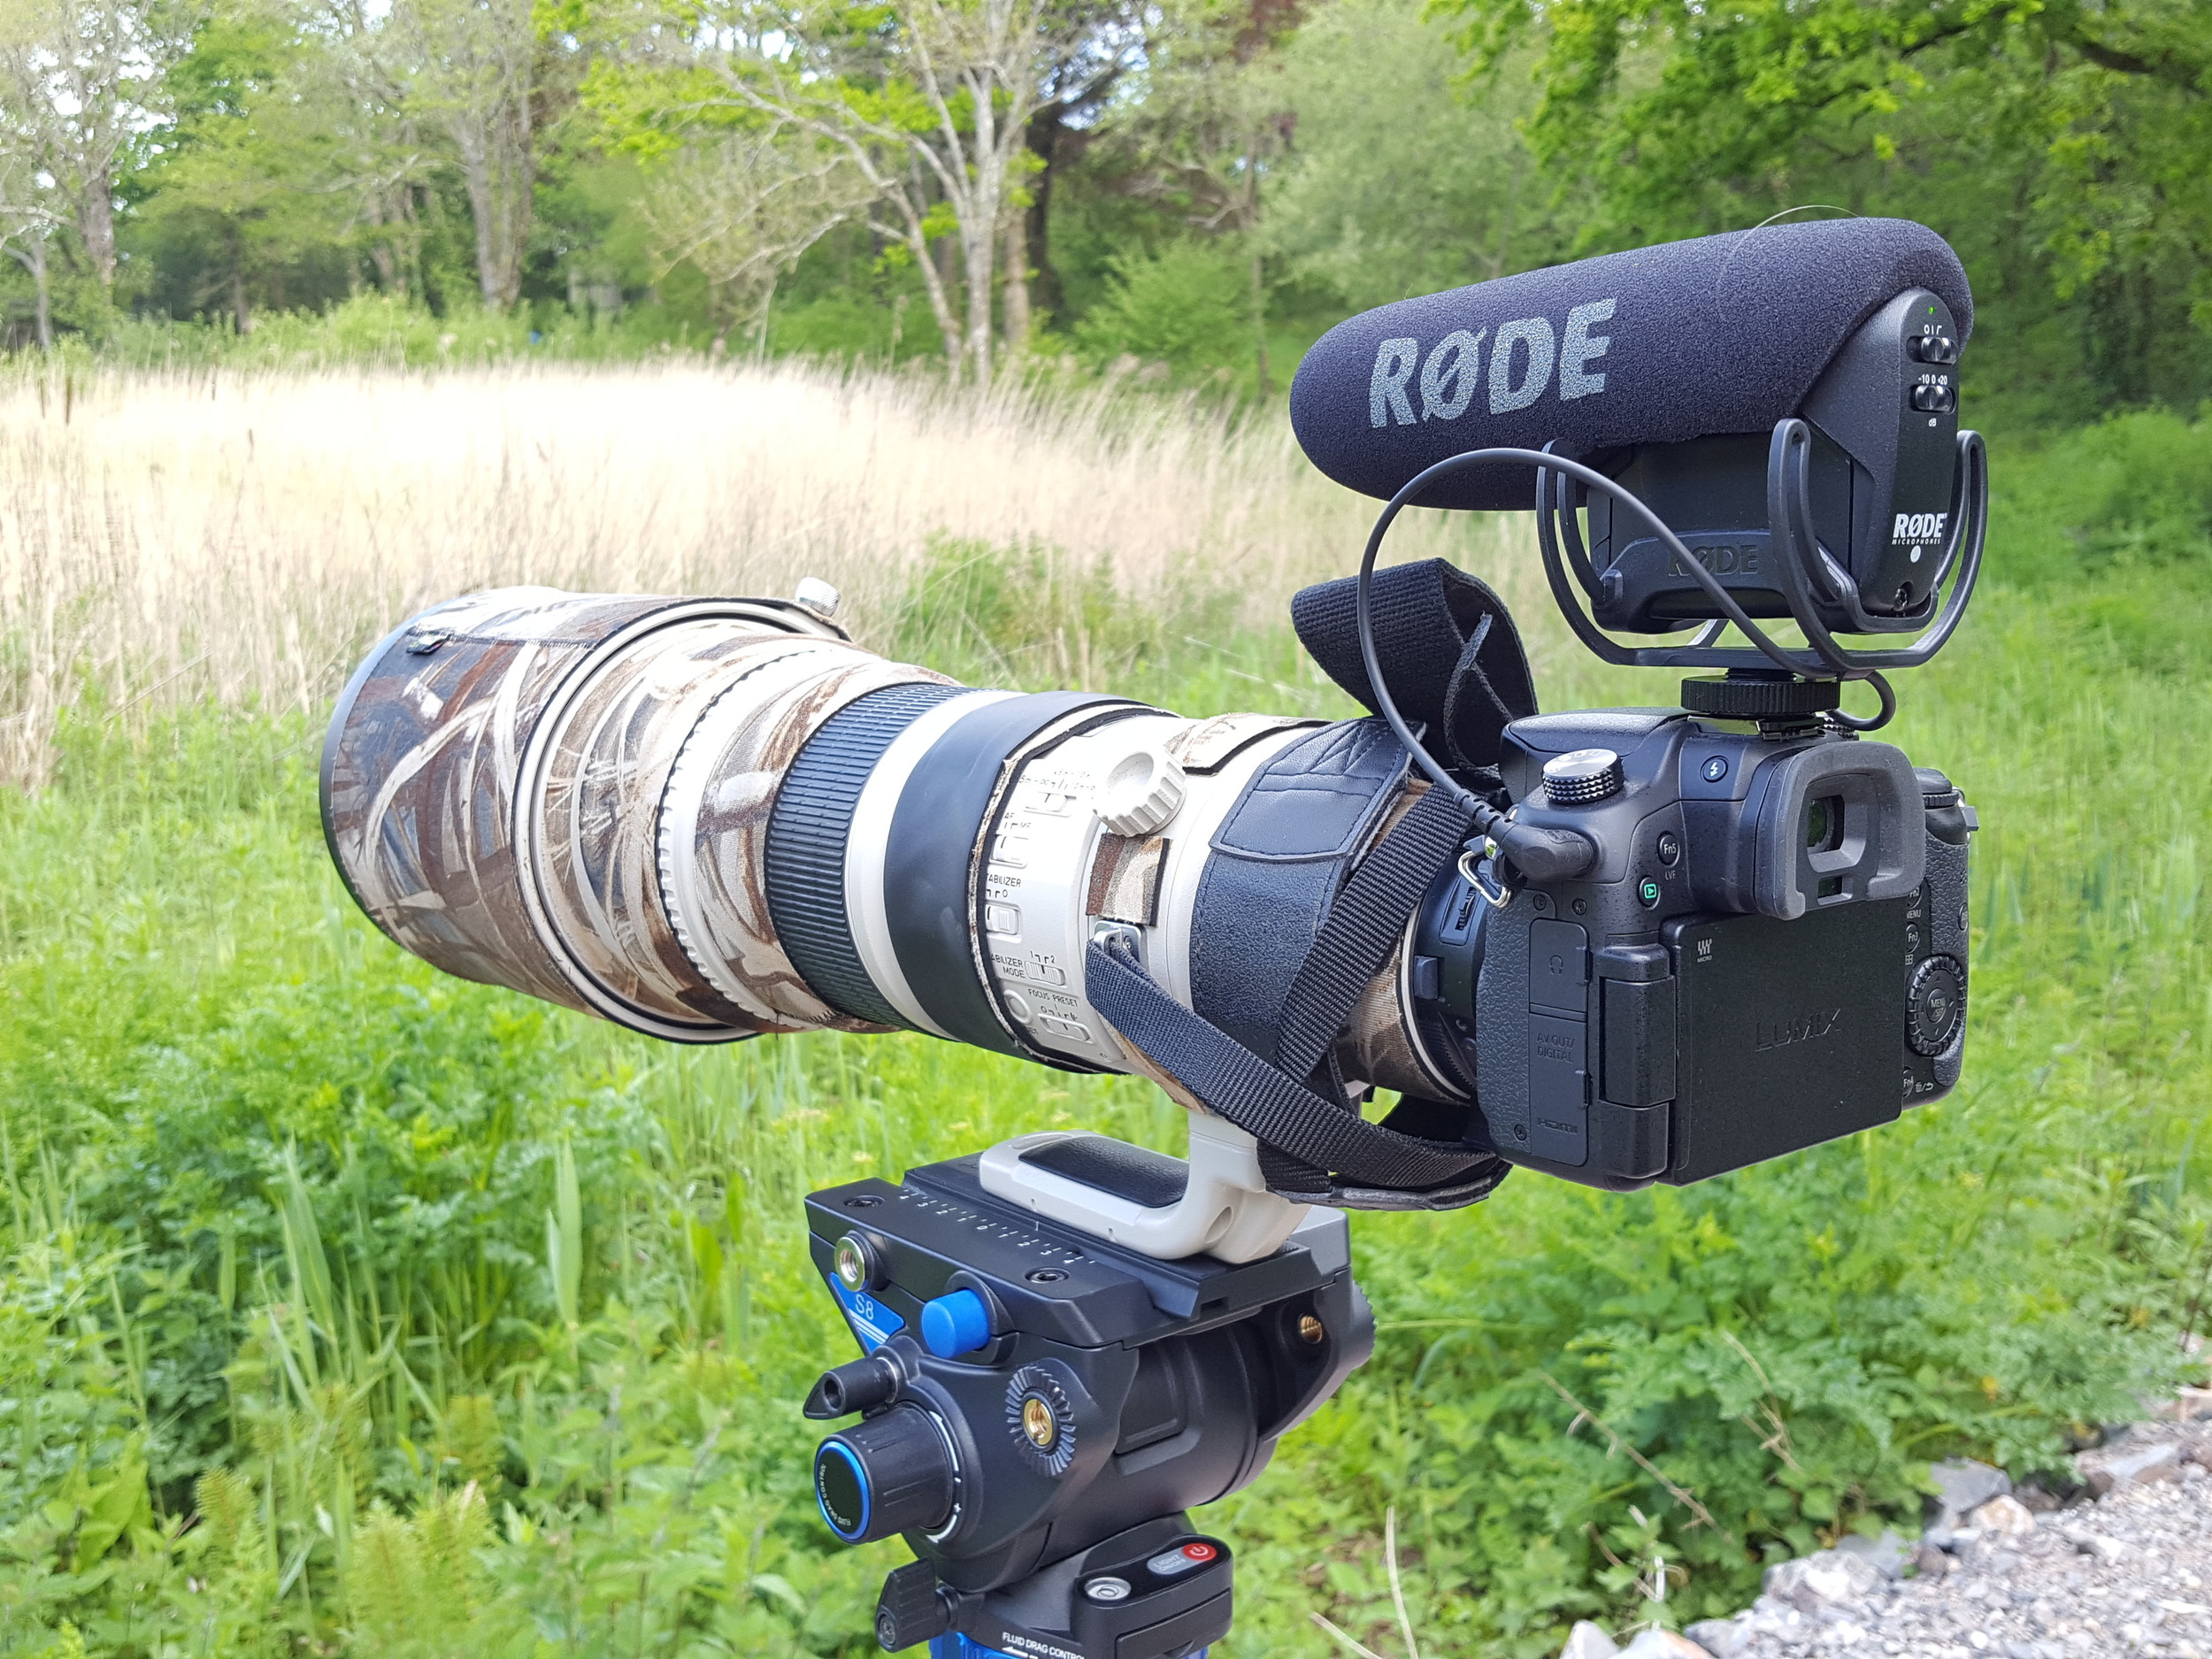 GH4 and canon 500mm